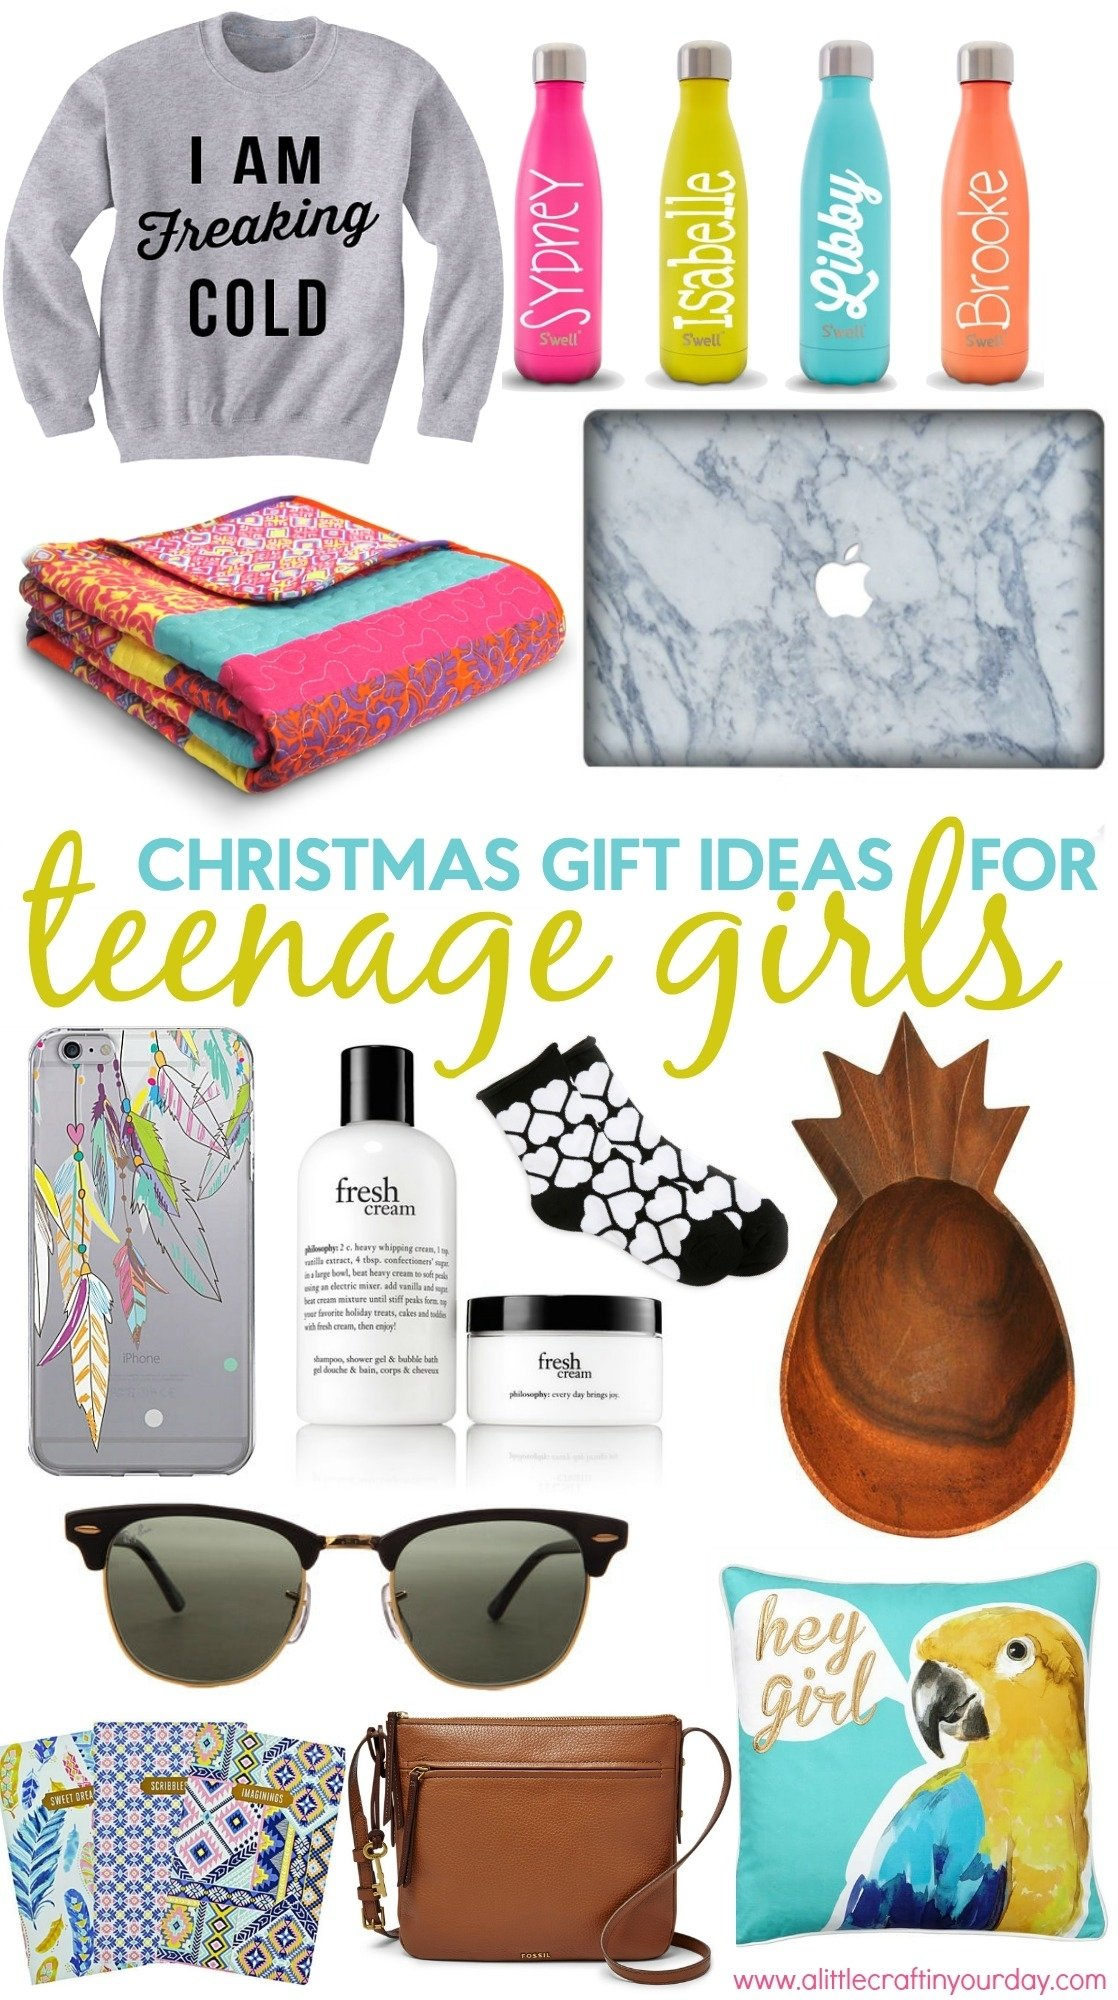 10 Beautiful Christmas Gift Ideas For Teen Girls christmas gift ideas for teen girls a little craft in your day 21 2021